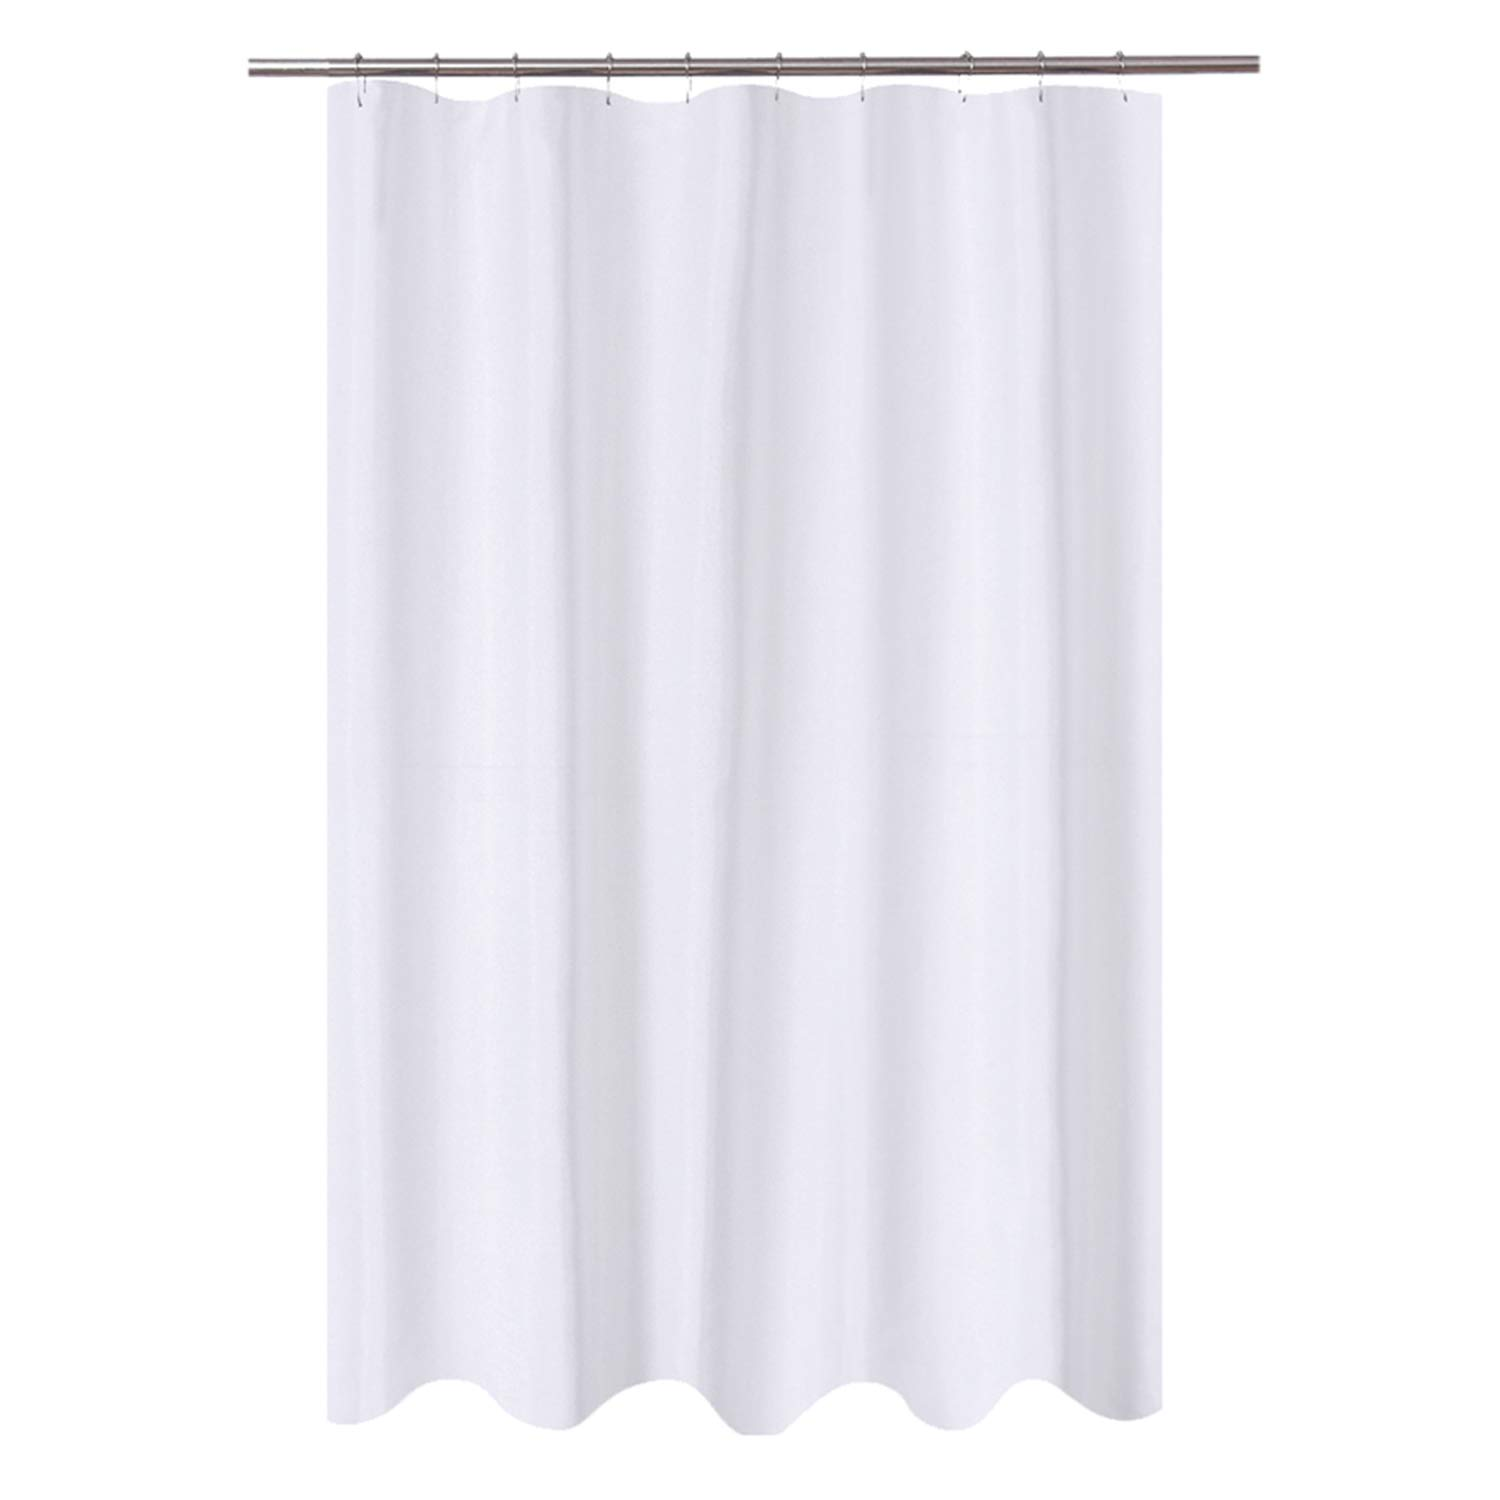 HOTEL LUXURY QUALITY Superior Quality And Eco Polyester Shower Liner Serves Healthy Long Life Use Applicable To Hotel Home Decor